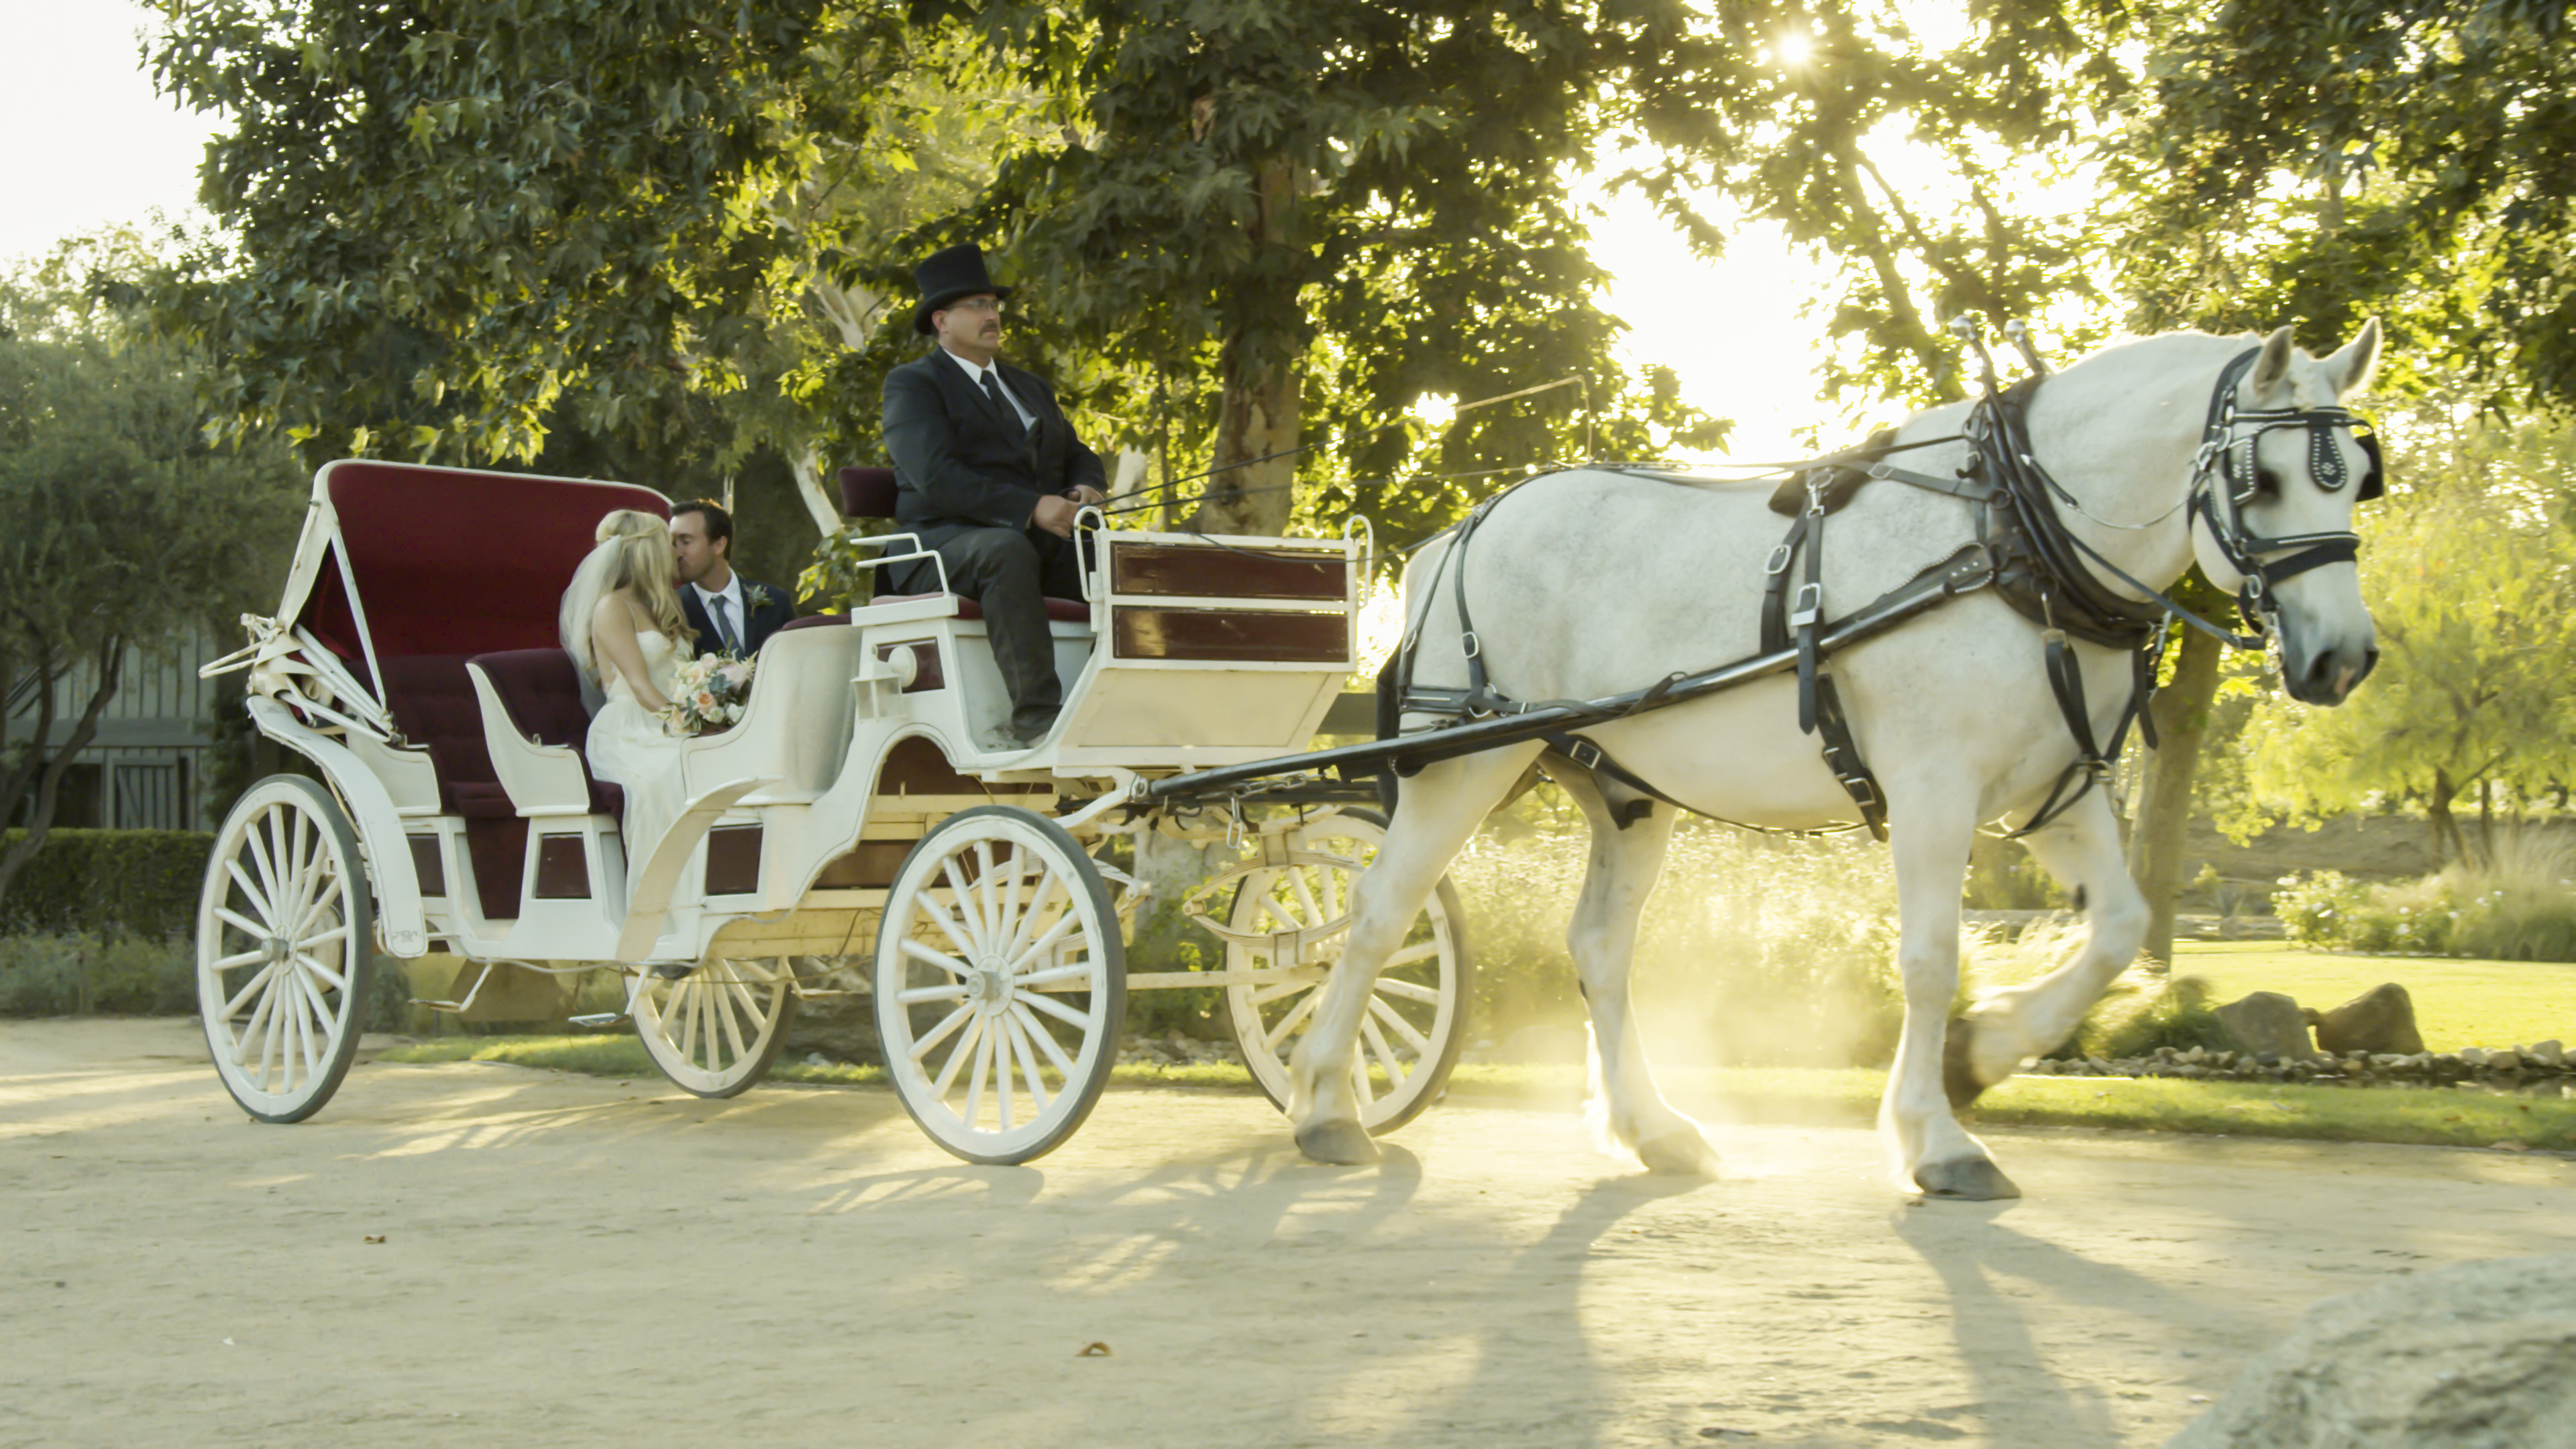 Wedding Carriage, Horse Carriage, Carriage Rides | Temecula, CA